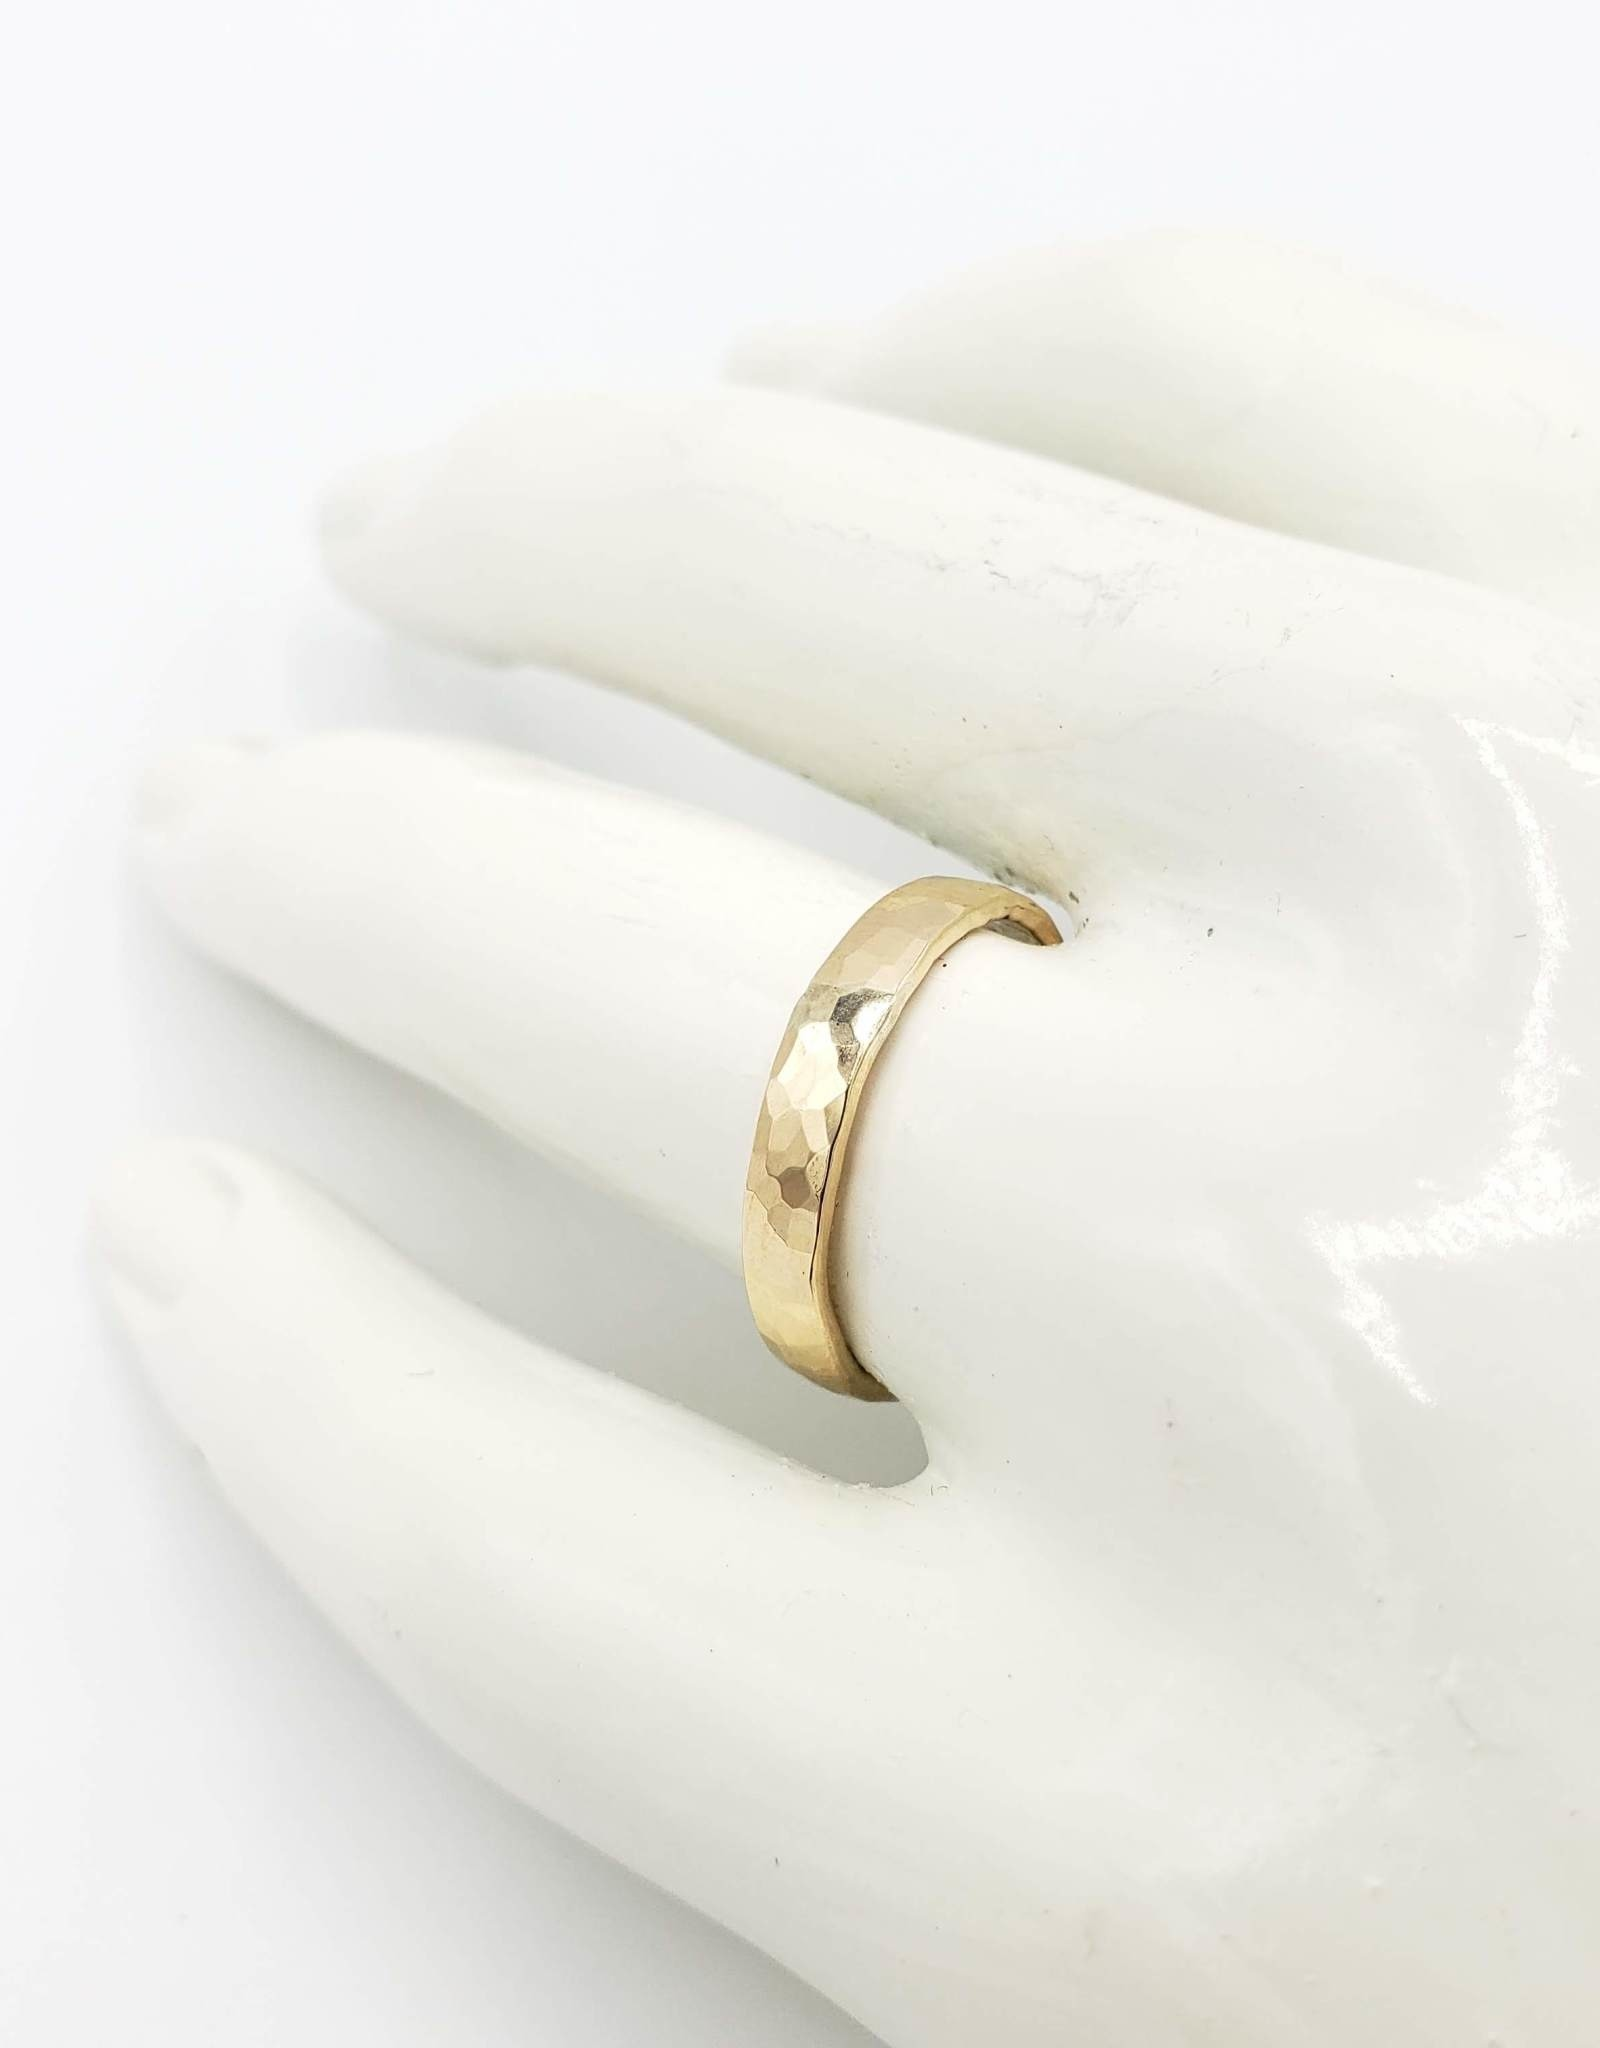 Peter James Jewelry Hammered Ring Band, Gold fill by Peter James Jewelry